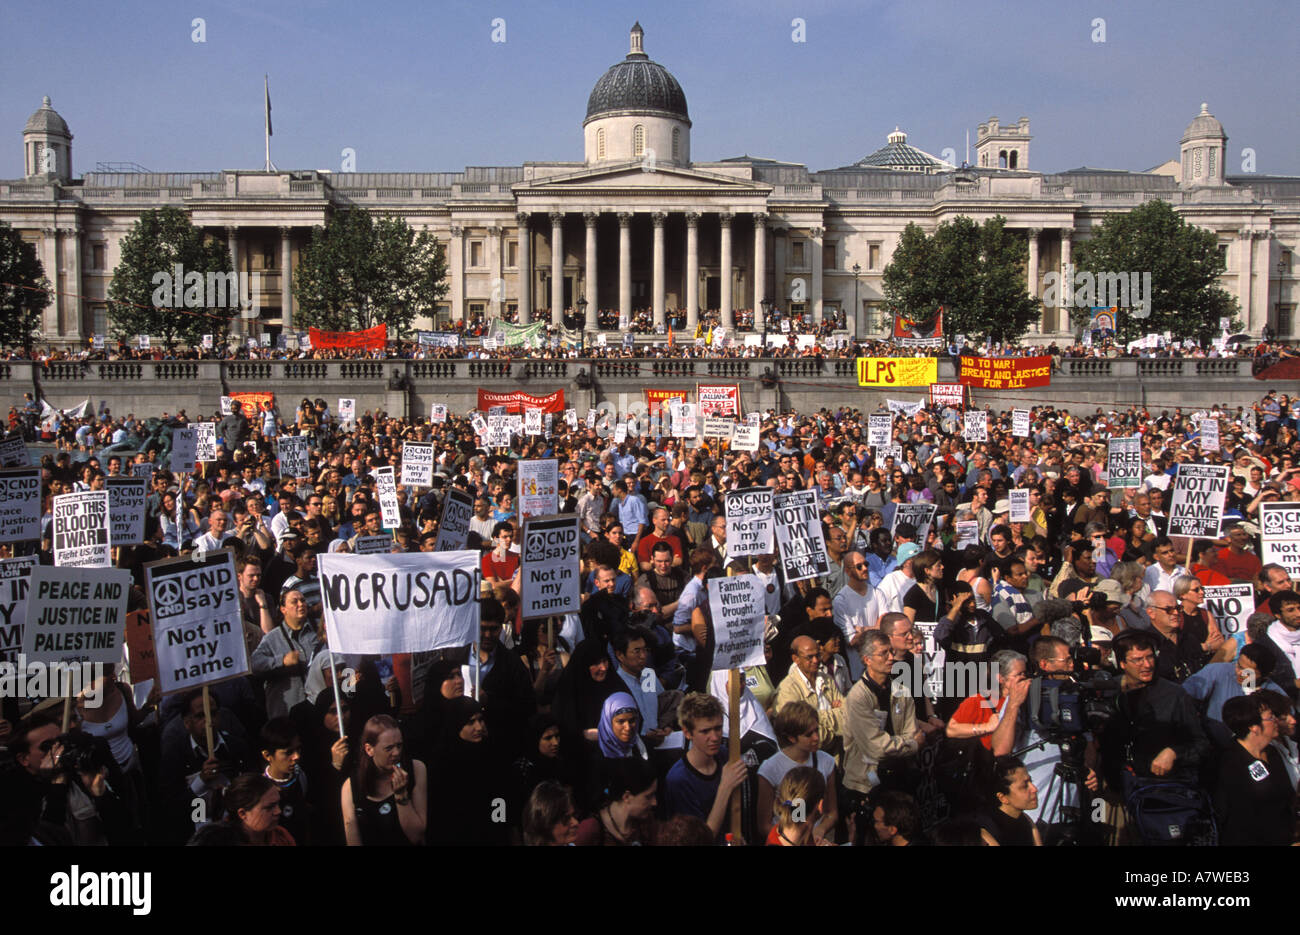 March and rally in Trafalgar Square, London, UK, against the bombing of Afghanistan, October 2001. - Stock Image